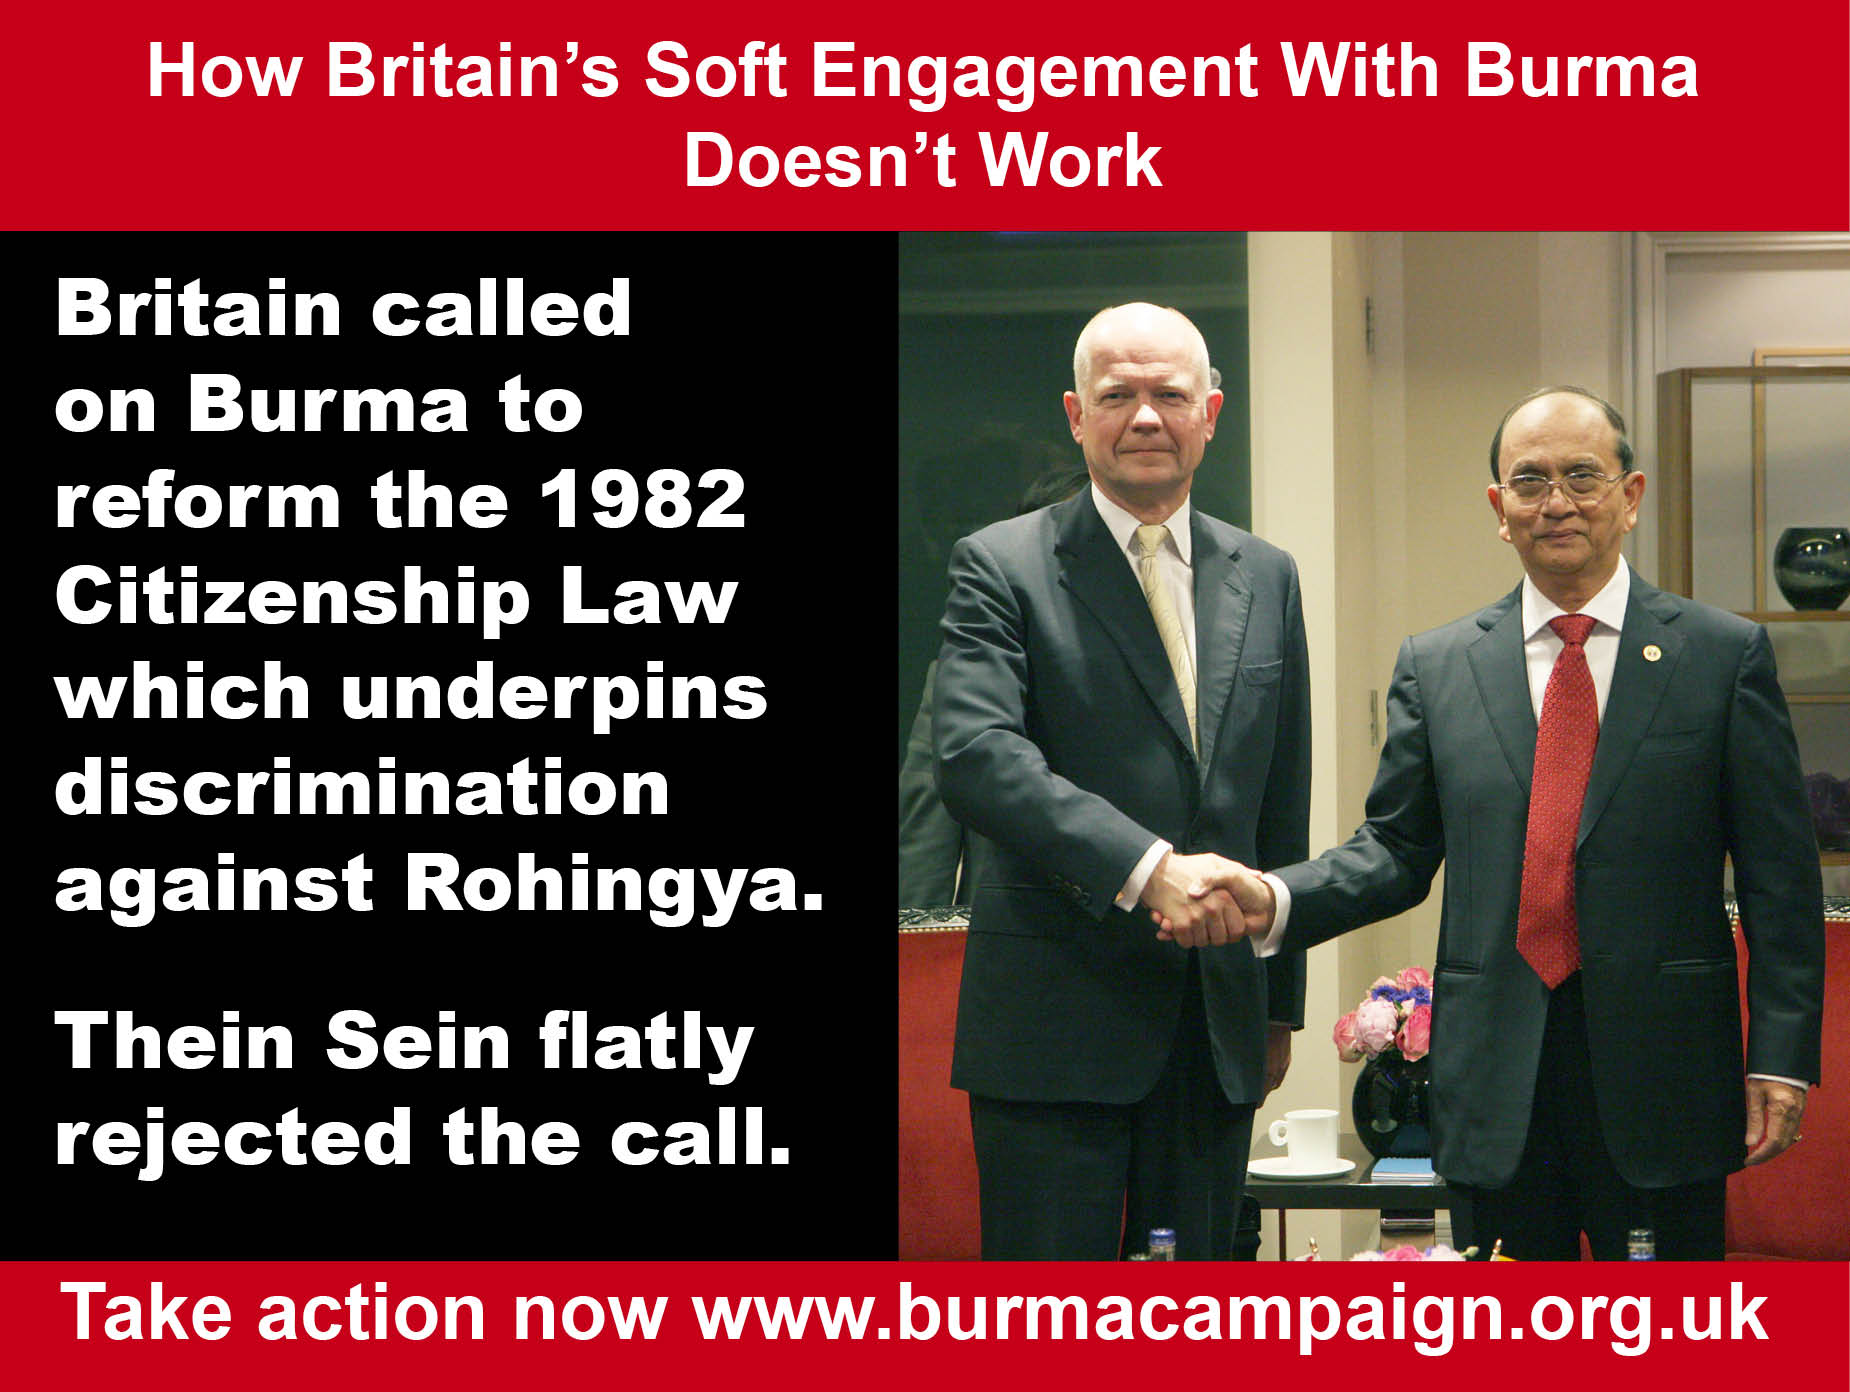 soft engagement doesn't work citizenship discrimination rohingya burma campaign UK